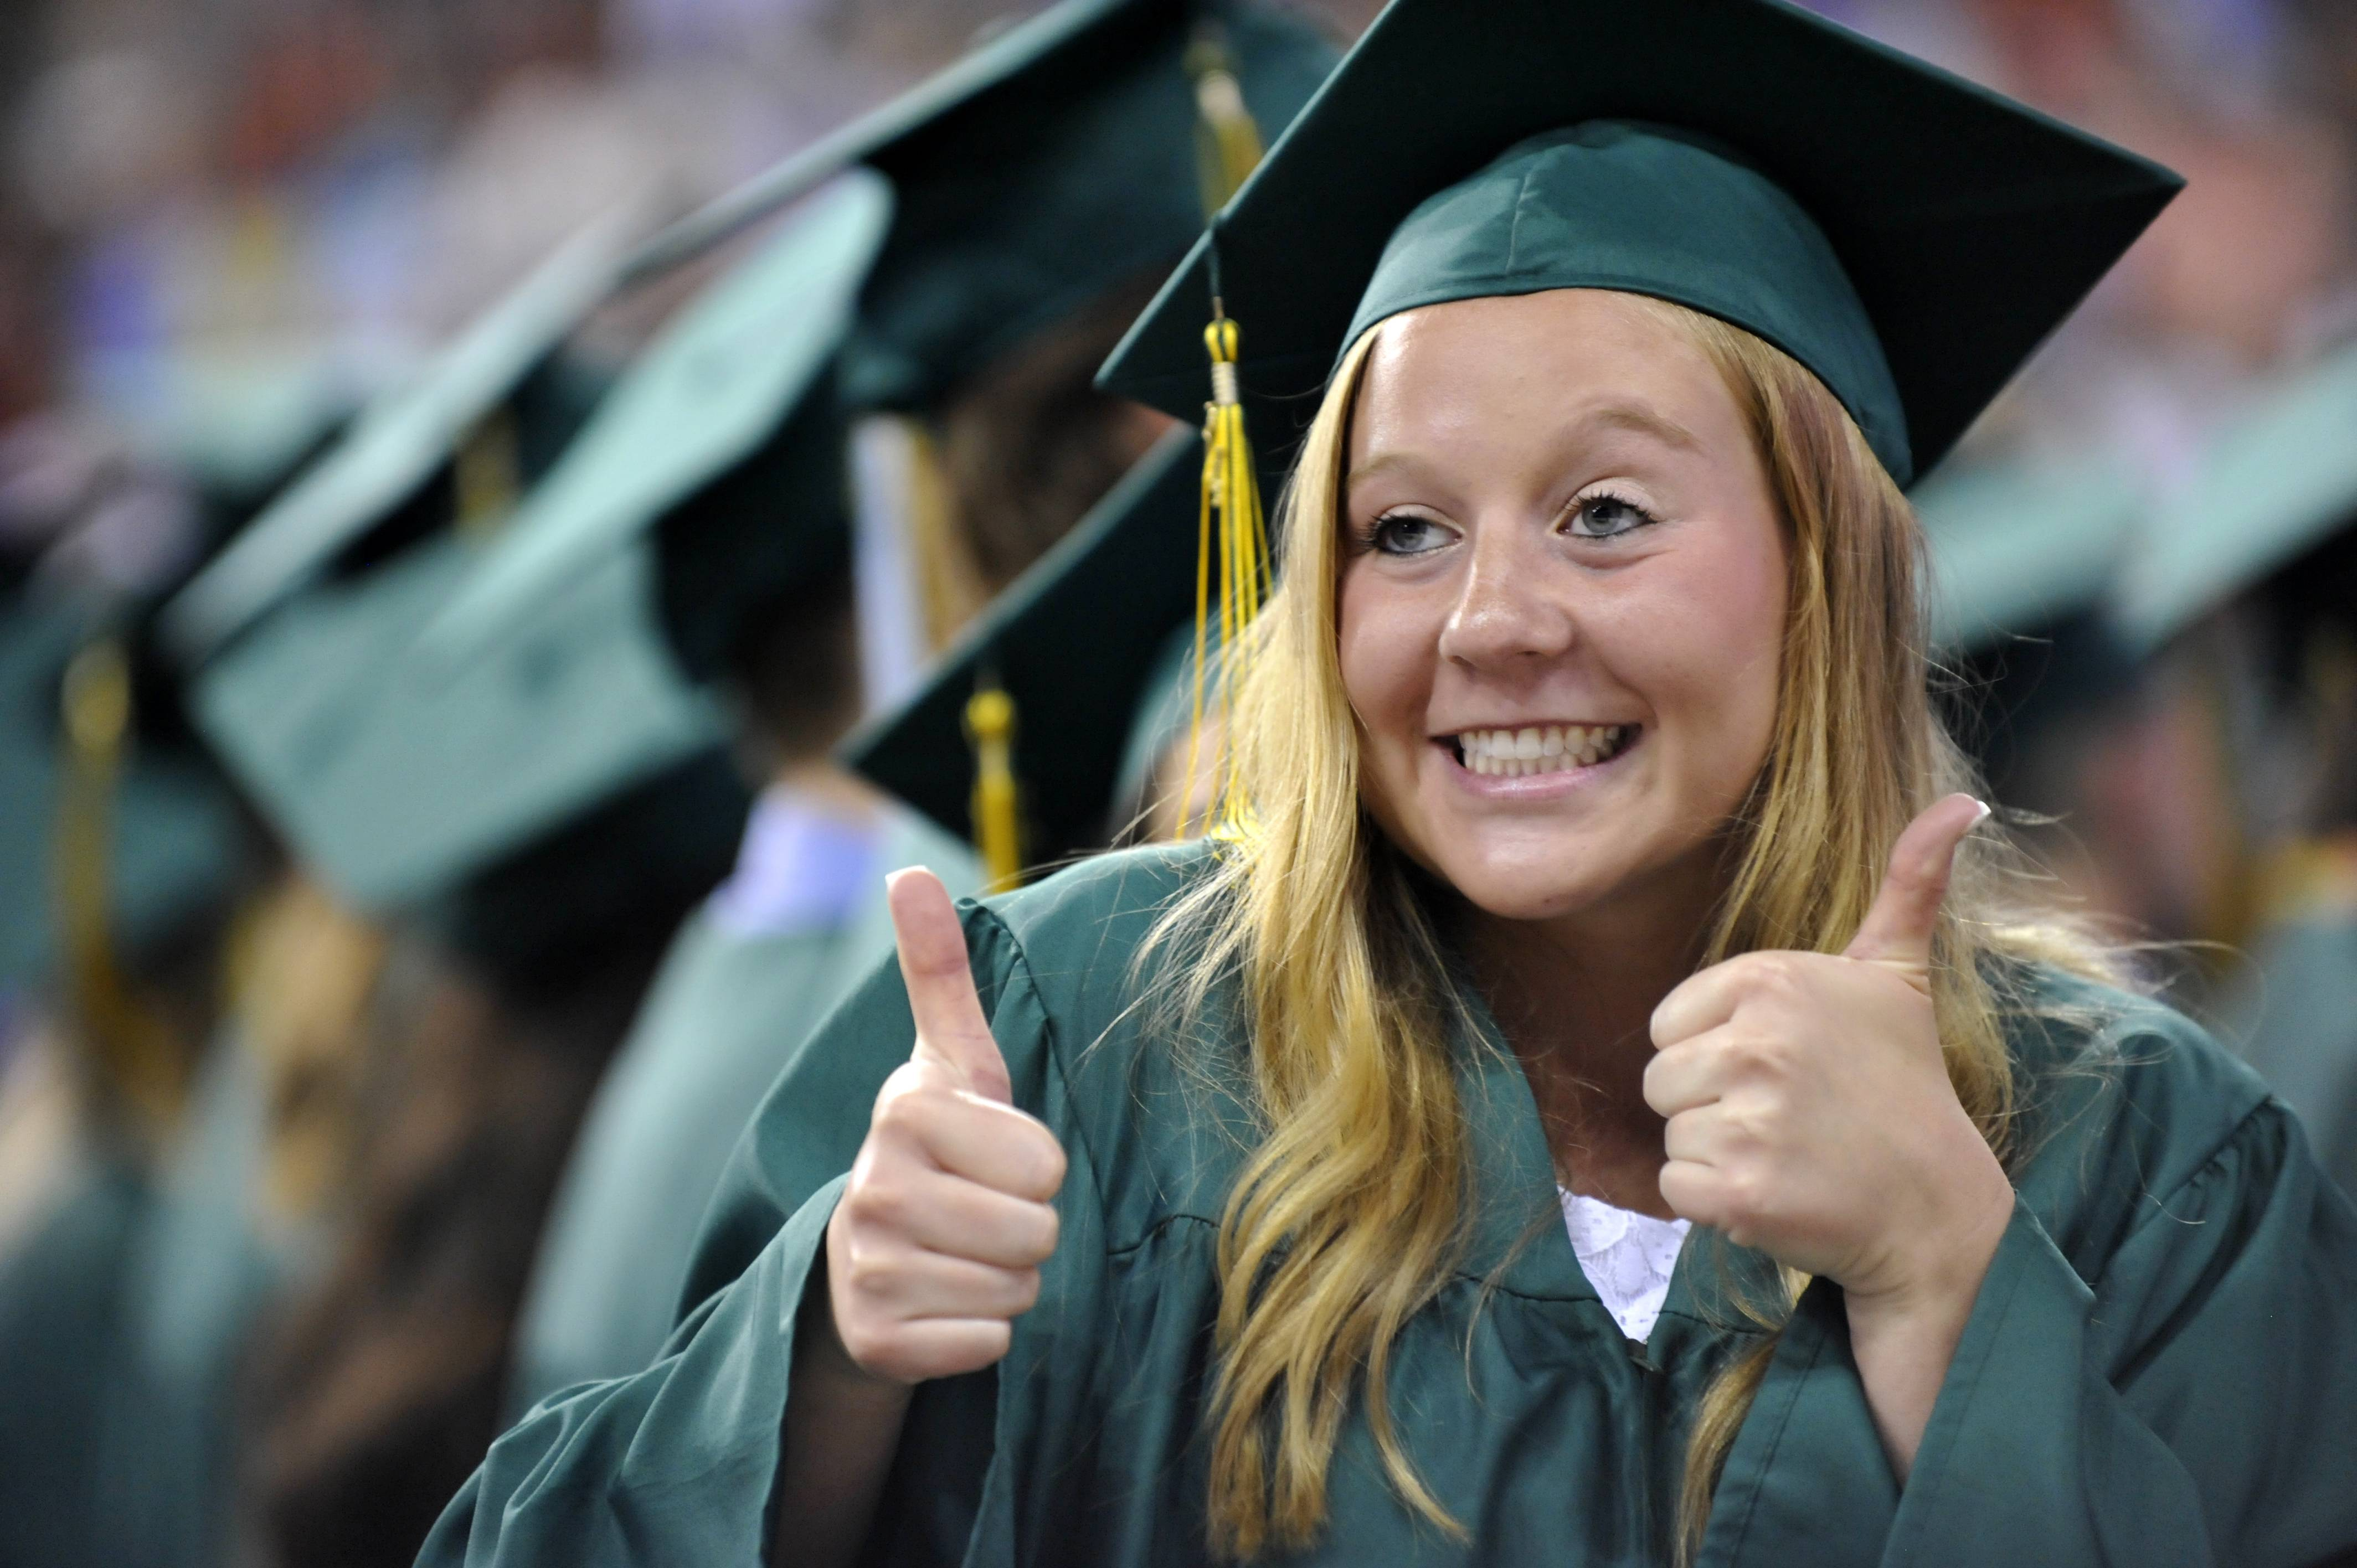 Emily Myers of Palatine gives thumbs-up as she looks into the audience during the William Fremd High School commencement at Sears Centre in Hoffman Estates on Sunday, June 1.